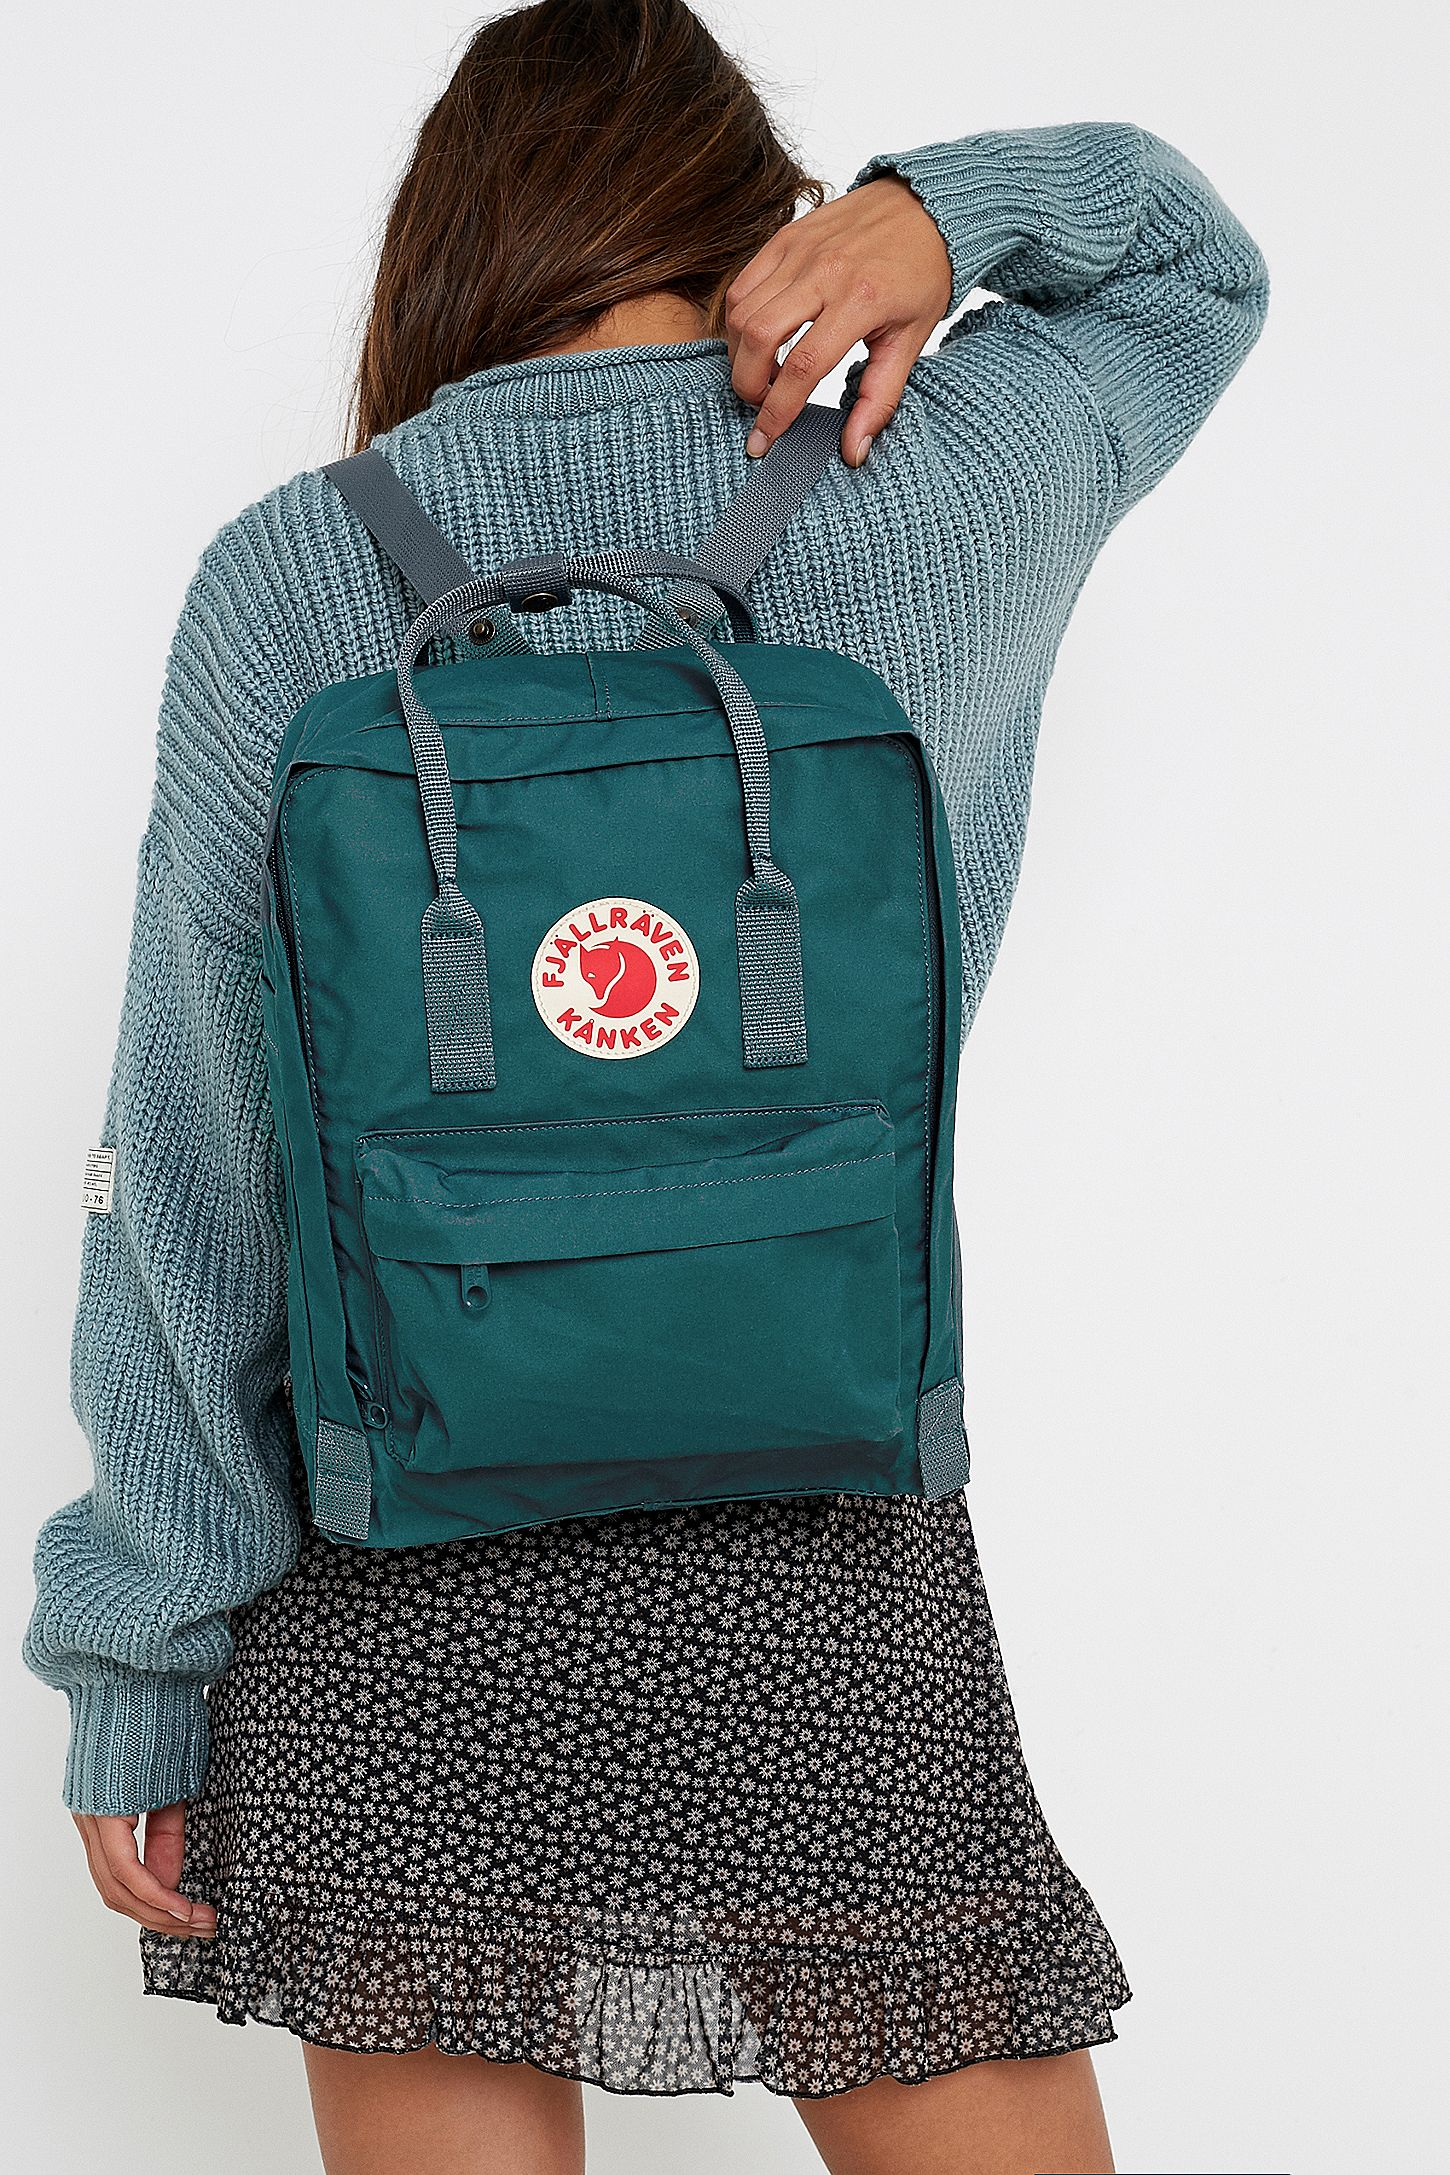 usa cheap sale classic sports shoes Fjallraven Kanken Classic Dusk Grey Backpack